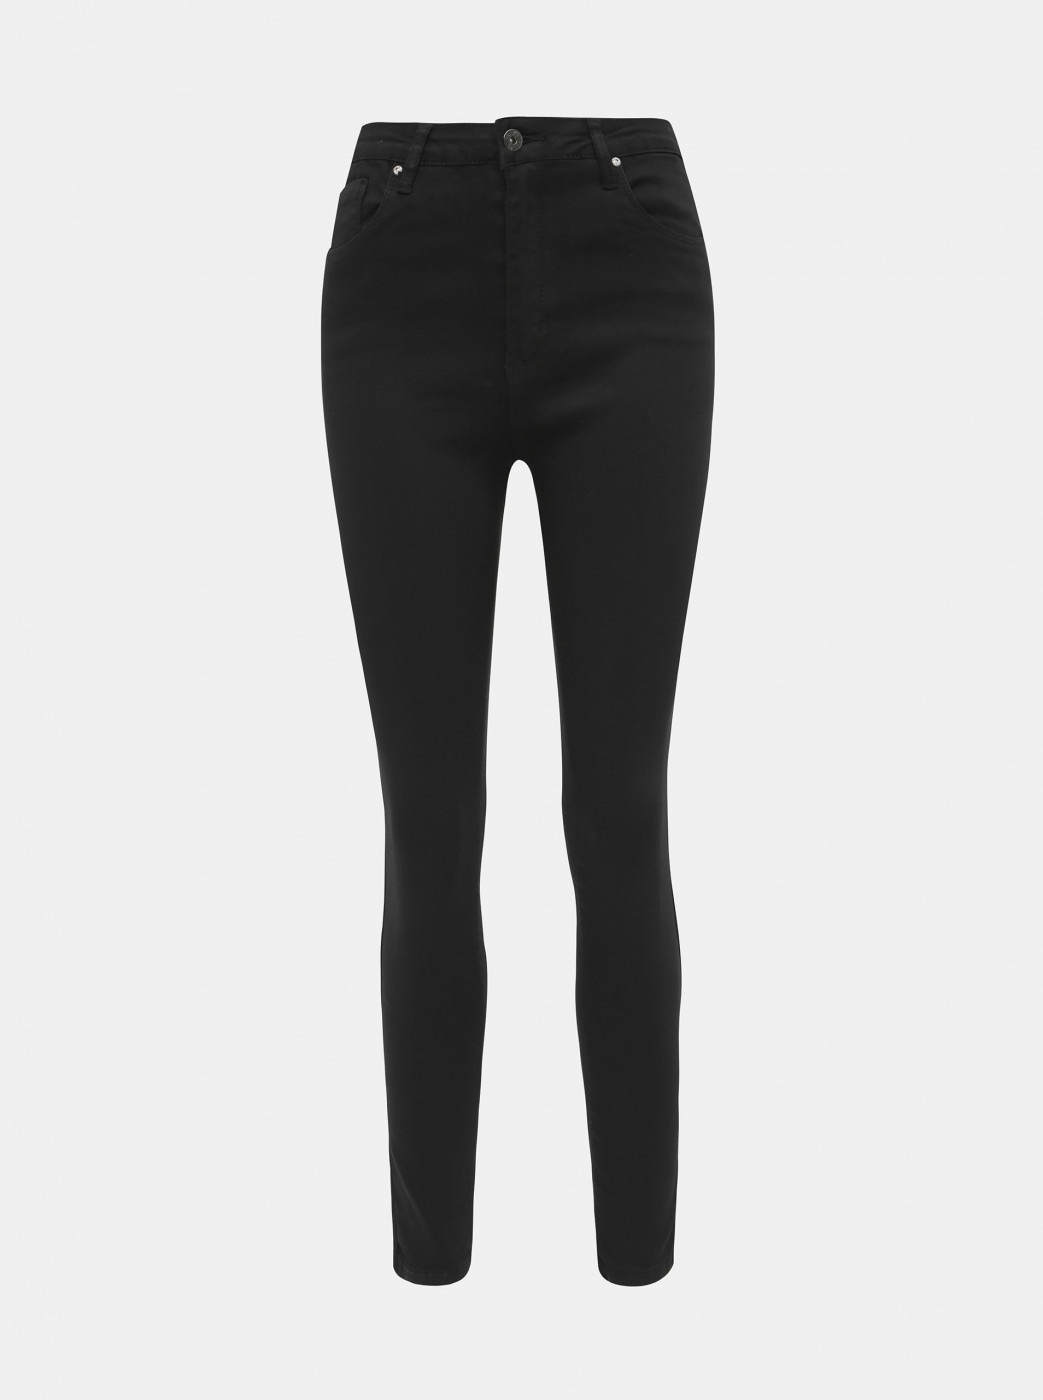 Black Women's Skinny Fit Jeans Haily ́s Tamine